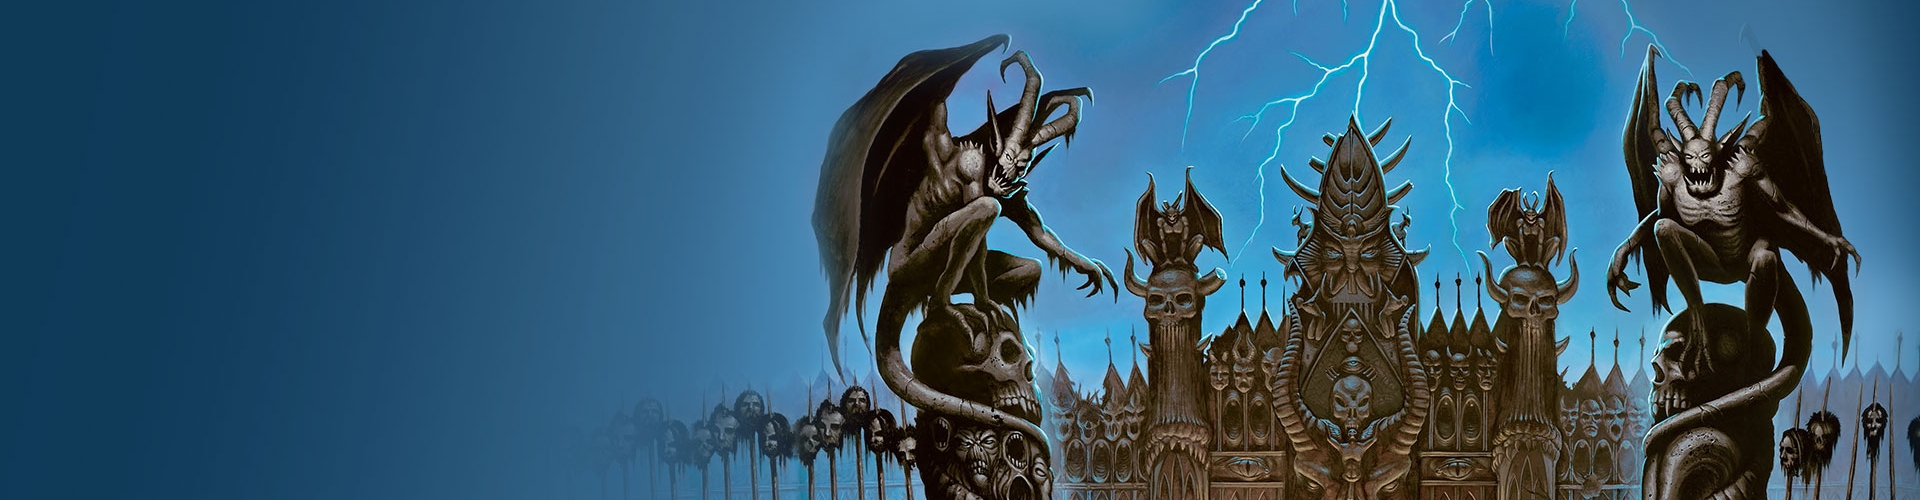 the wizards d d team heads to the temple of elemental evil ddo players